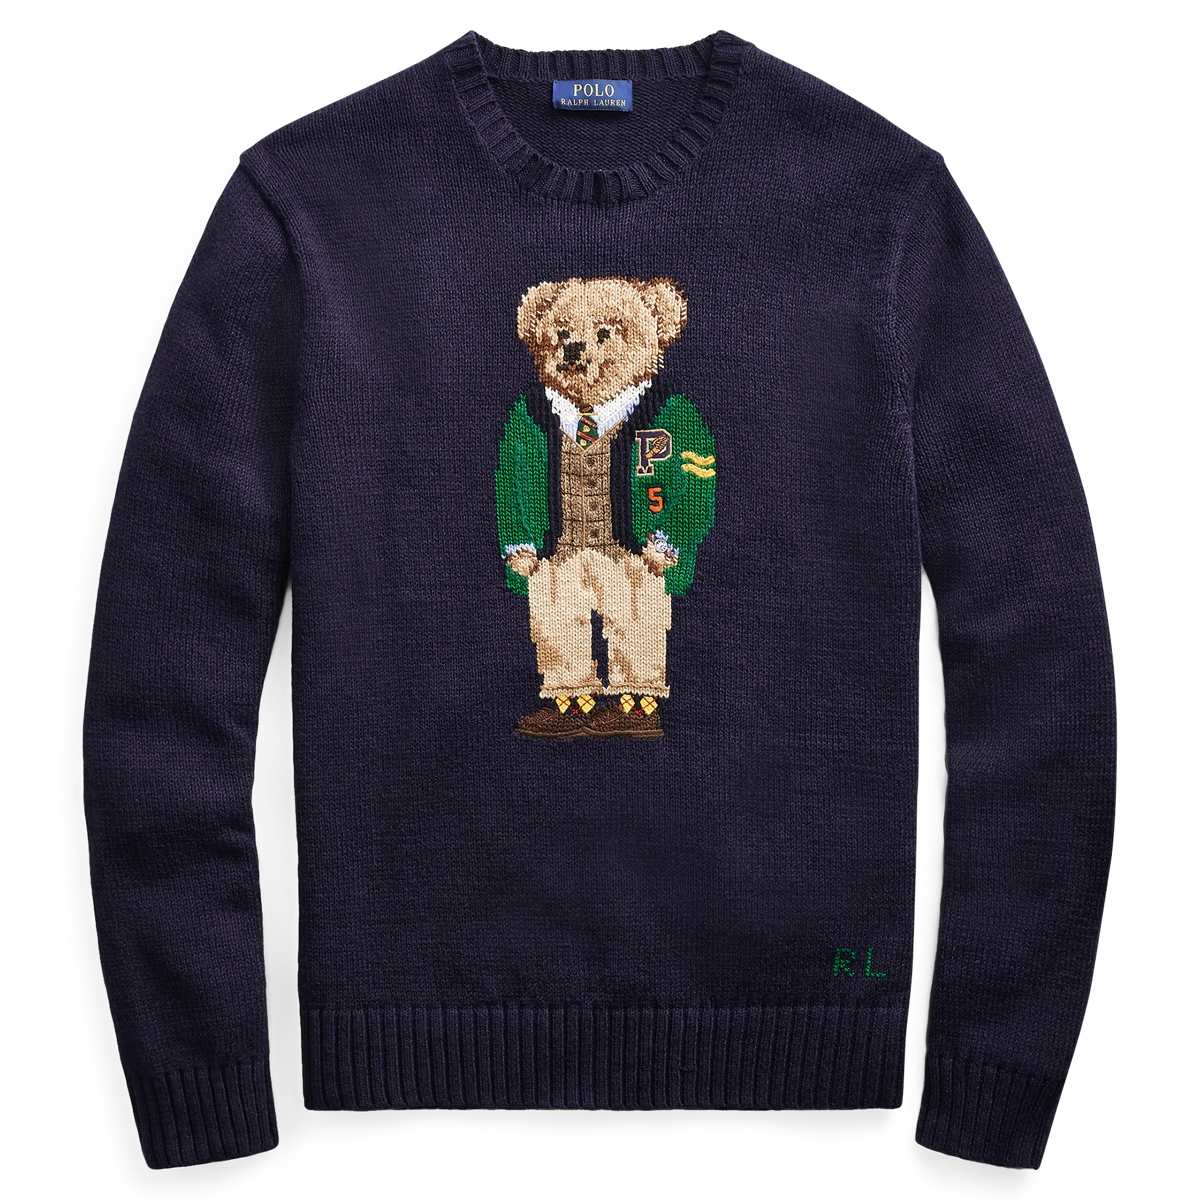 University Bear Sweater Bear Bear Sweater University University Sweater rBWxedCo